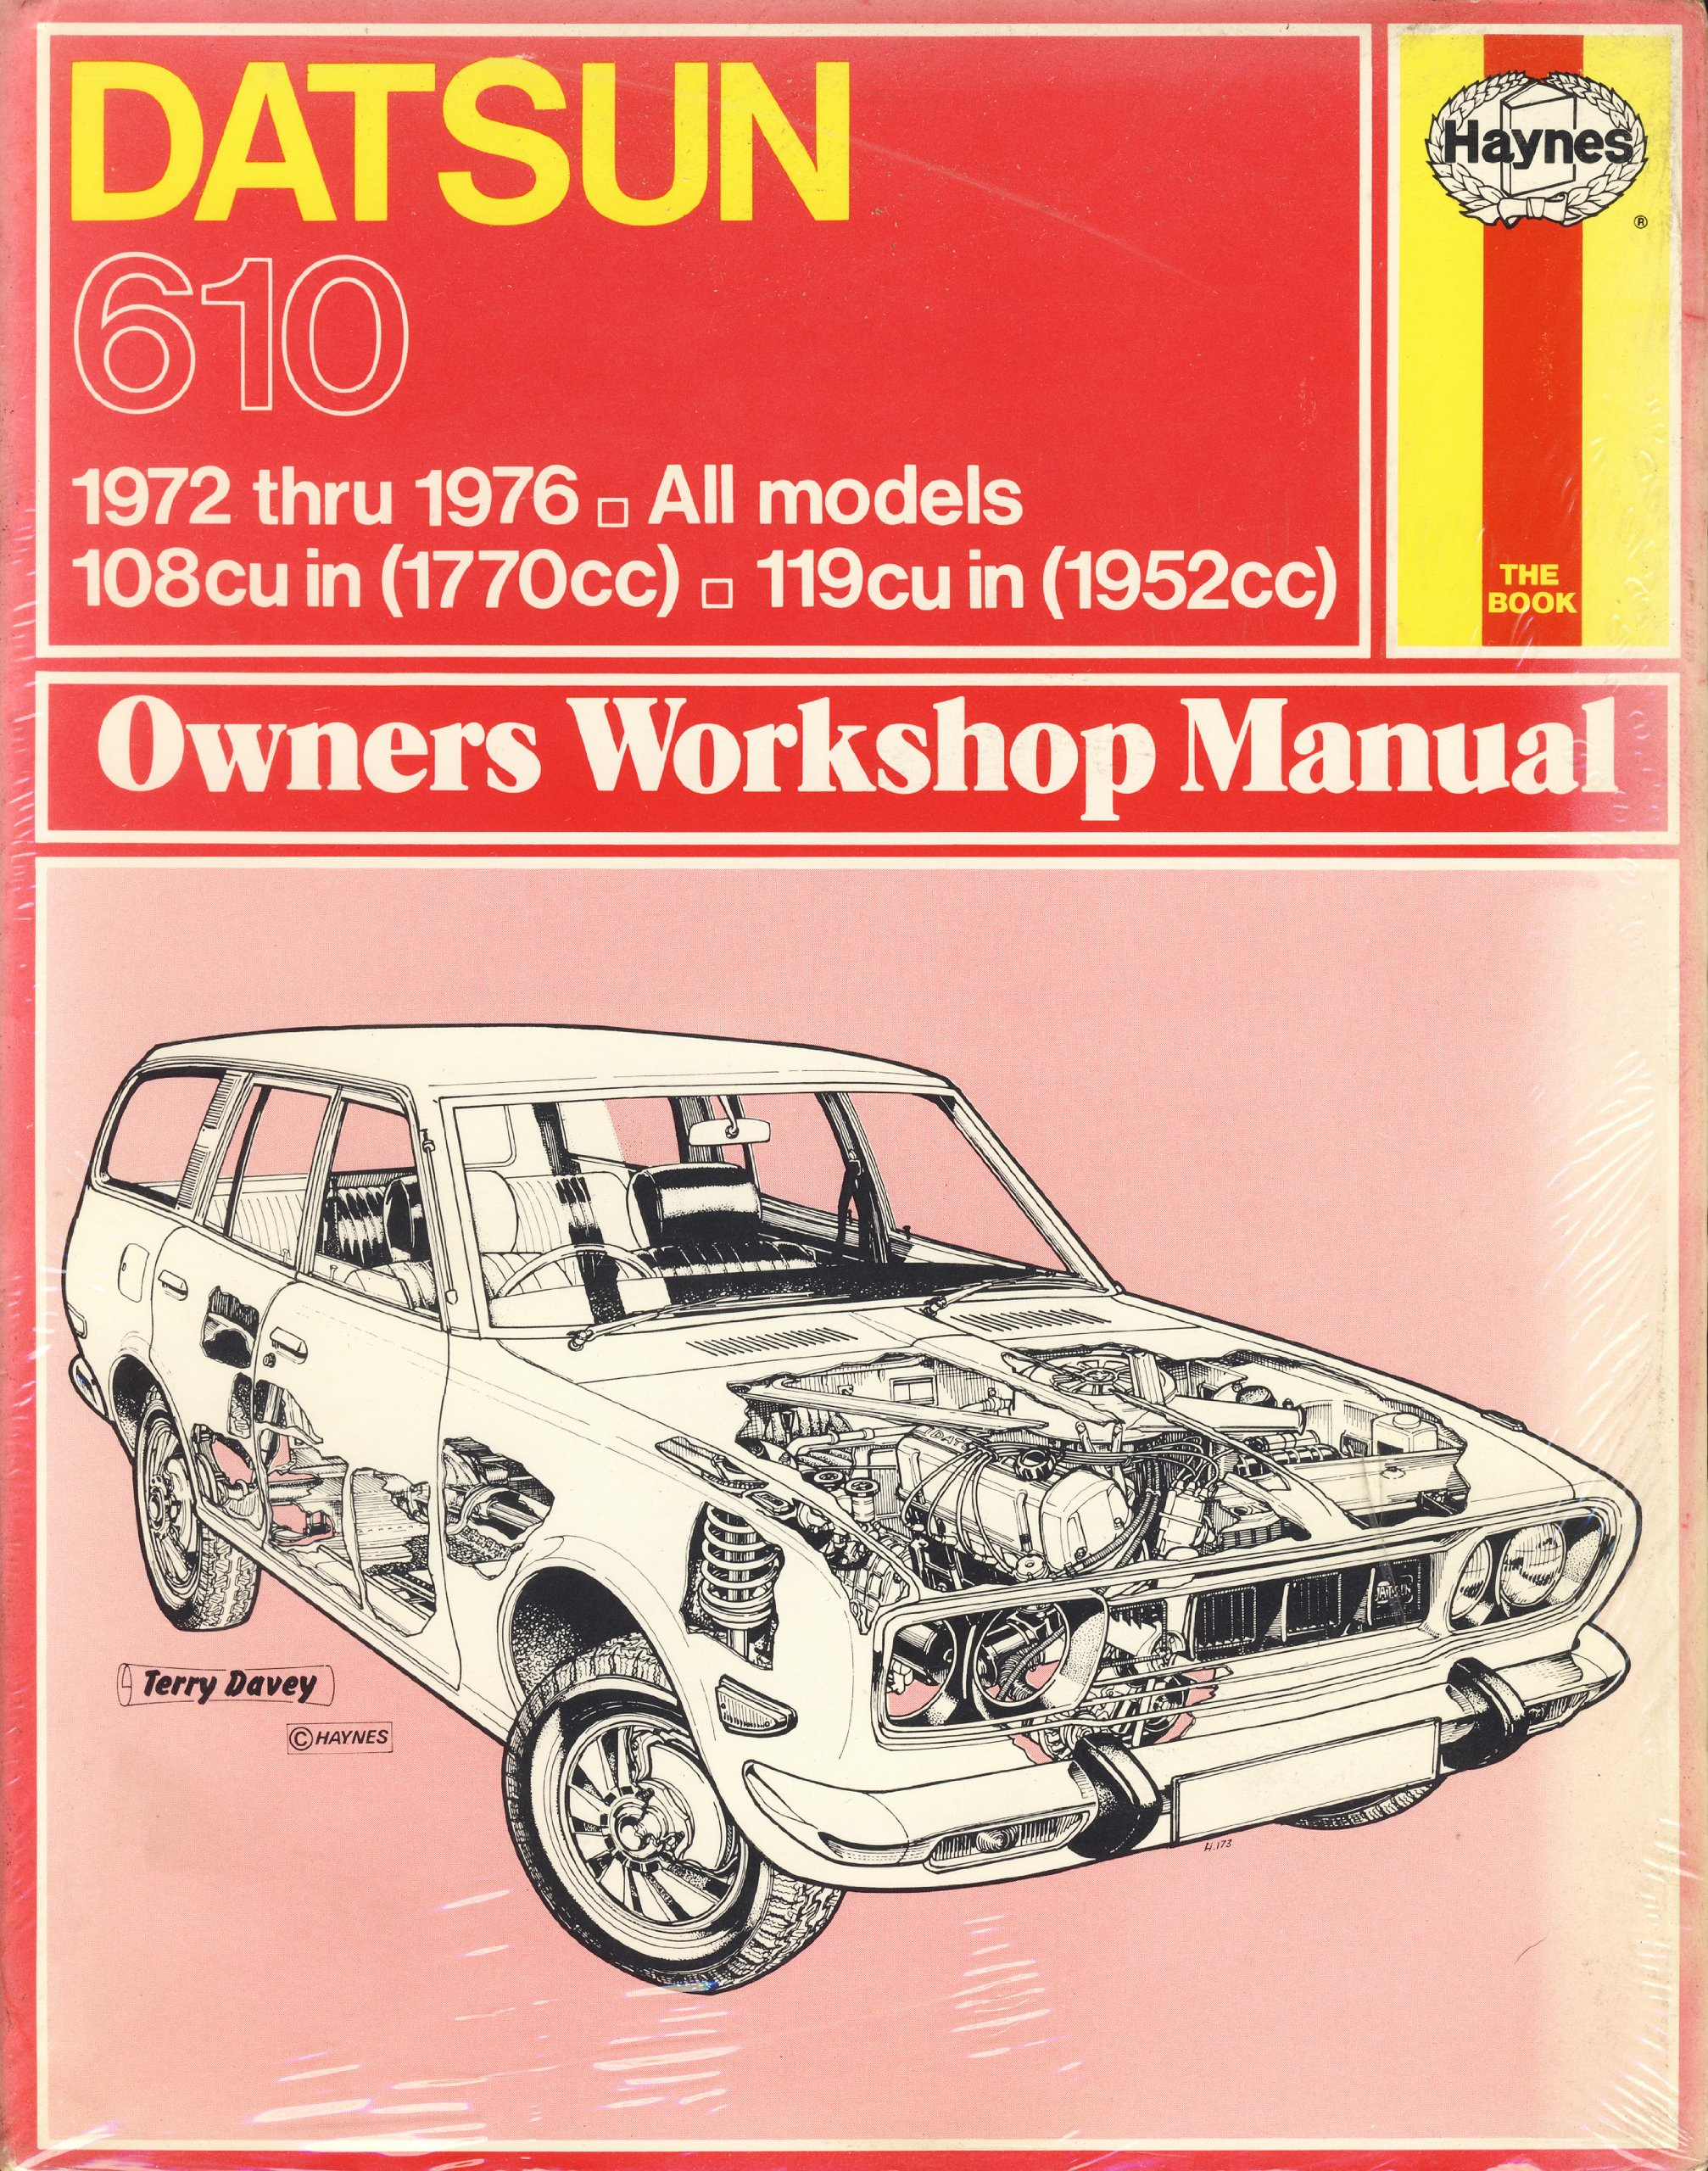 Haynes Datsun 610 Owners Workshop Manual: 1972 - 1976: John Harold Haynes:  9781850101314: Amazon.com: Books